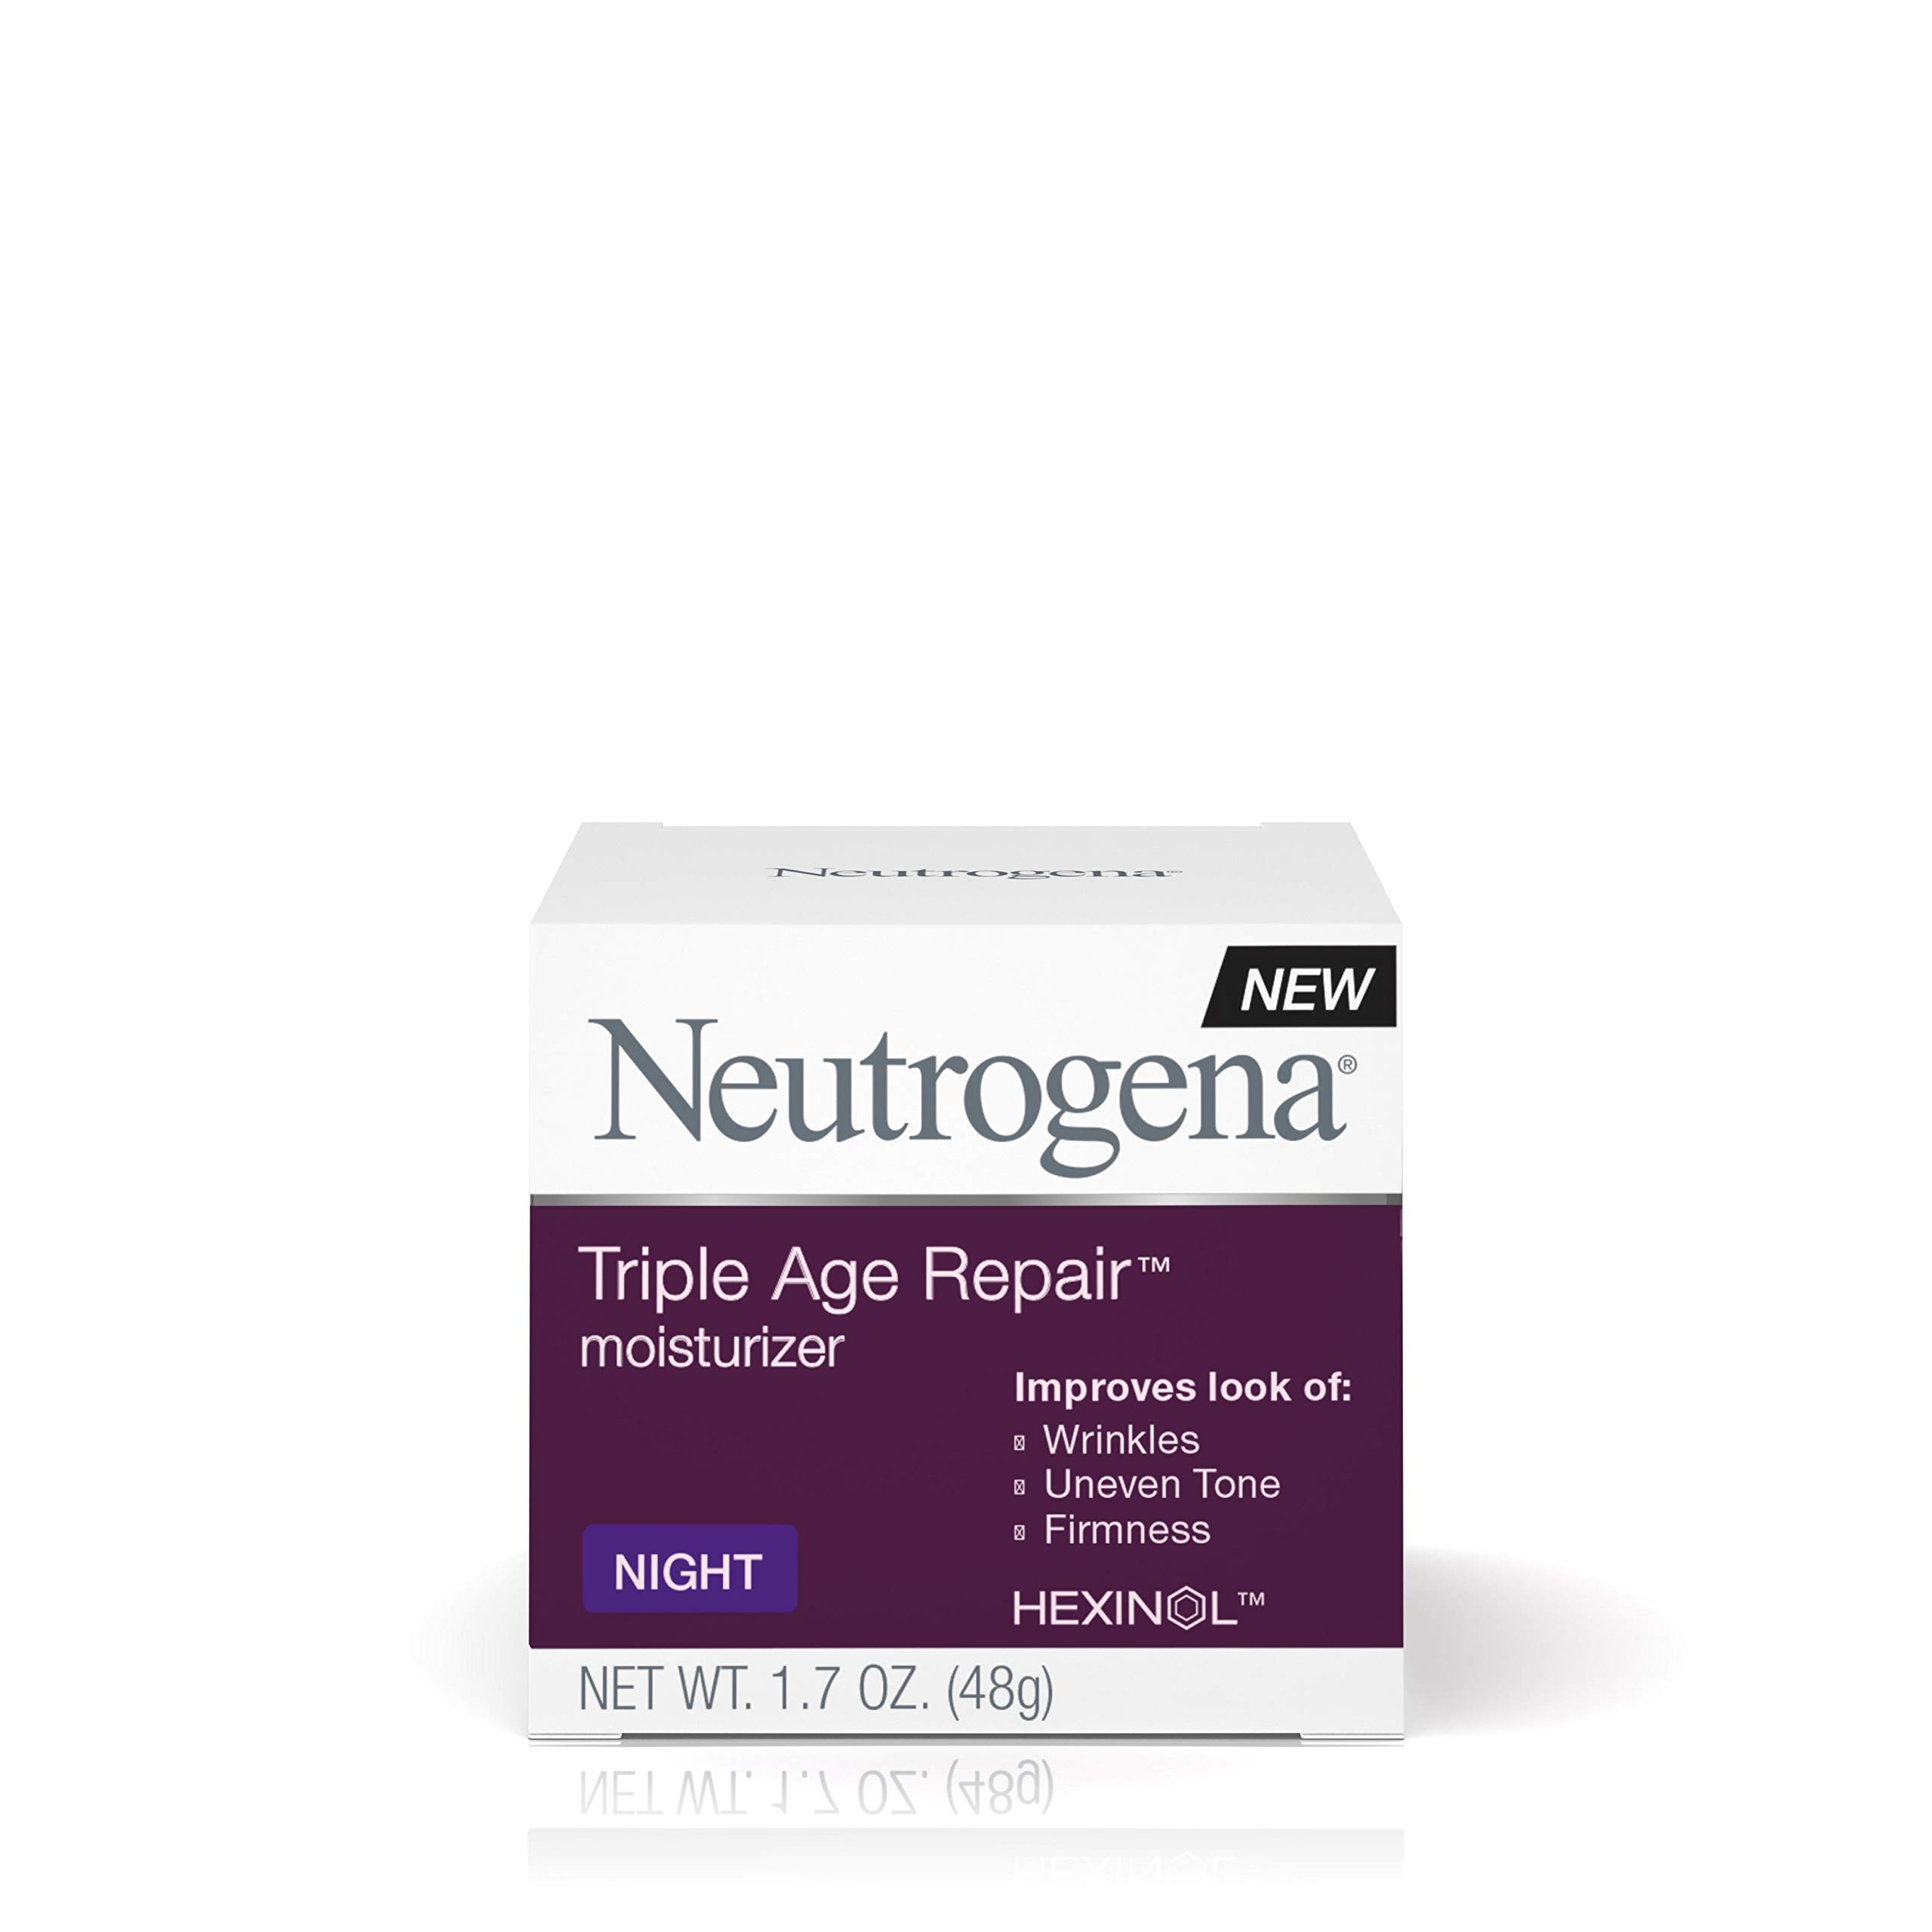 Neutrogena Triple Age Repair Anti-Aging Night Face Cream with Vitamin C to Fight Wrinkles & Even Tone, Dark Spot Remover & Firming Face & Neck Cream with Glycerin & Shea Butter, 1.7 oz by Neutrogena